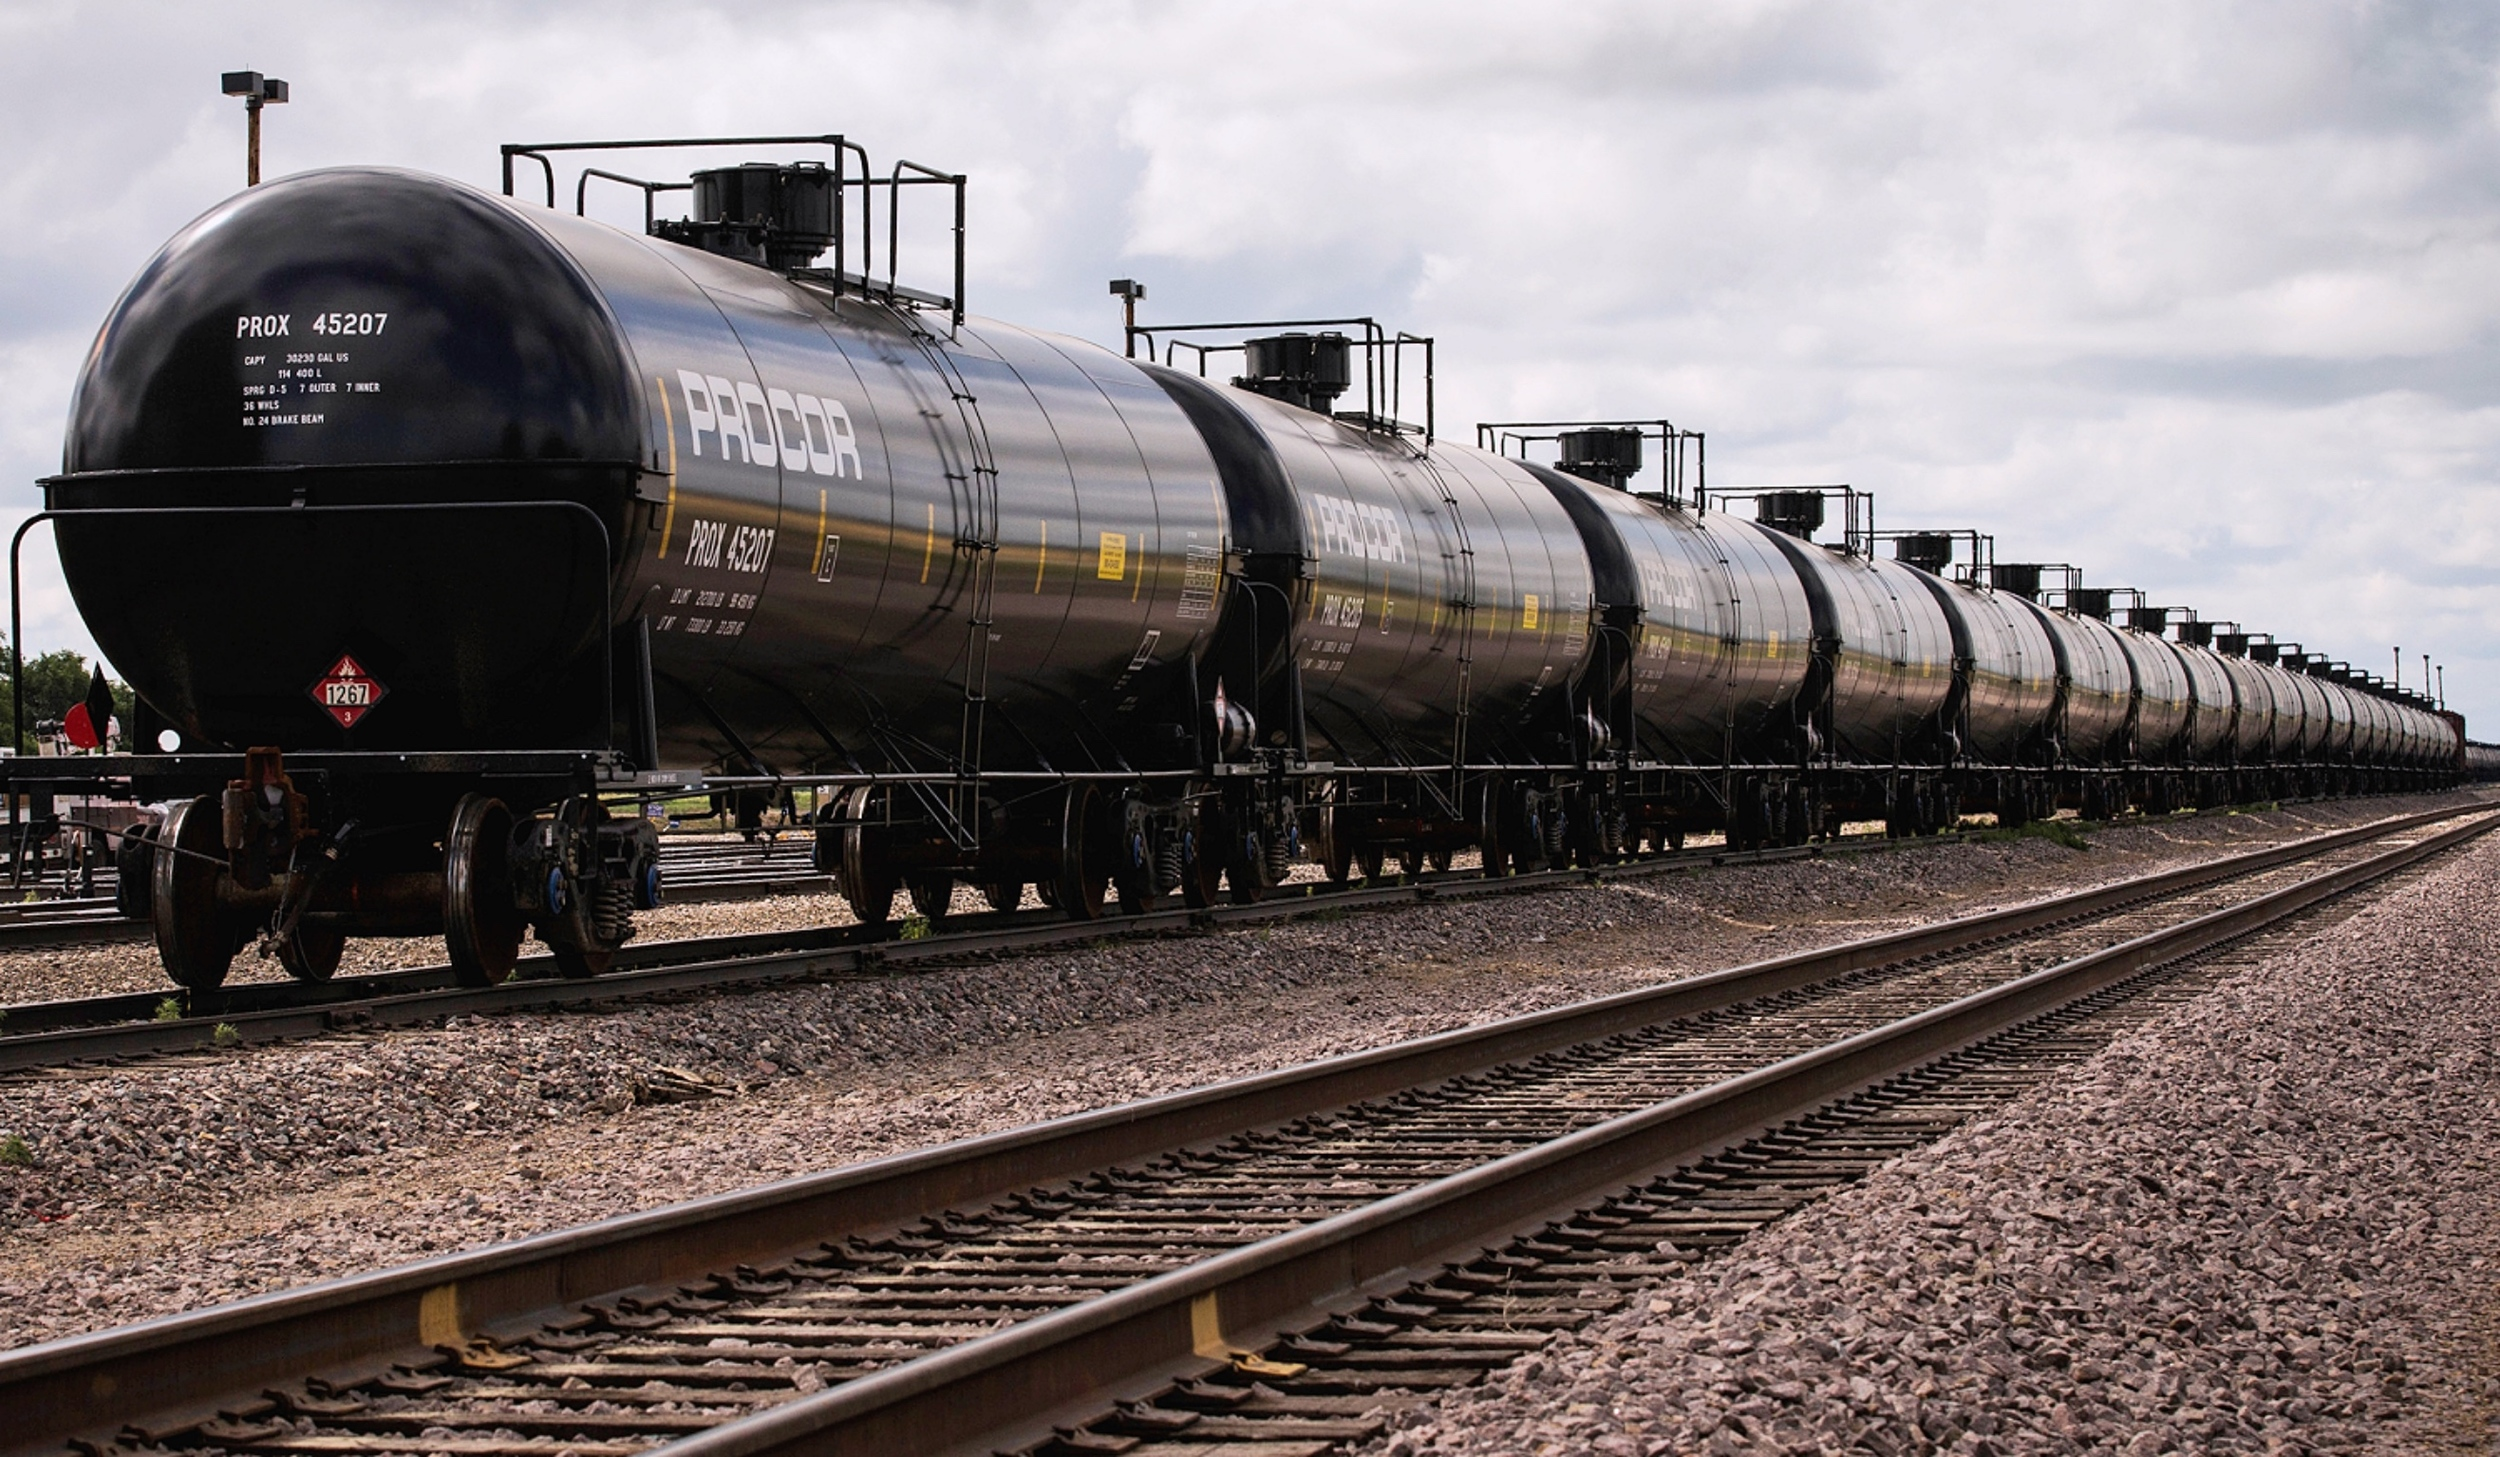 Pipelines vs. Rail: Which Method is Safer for Transporting Oil?